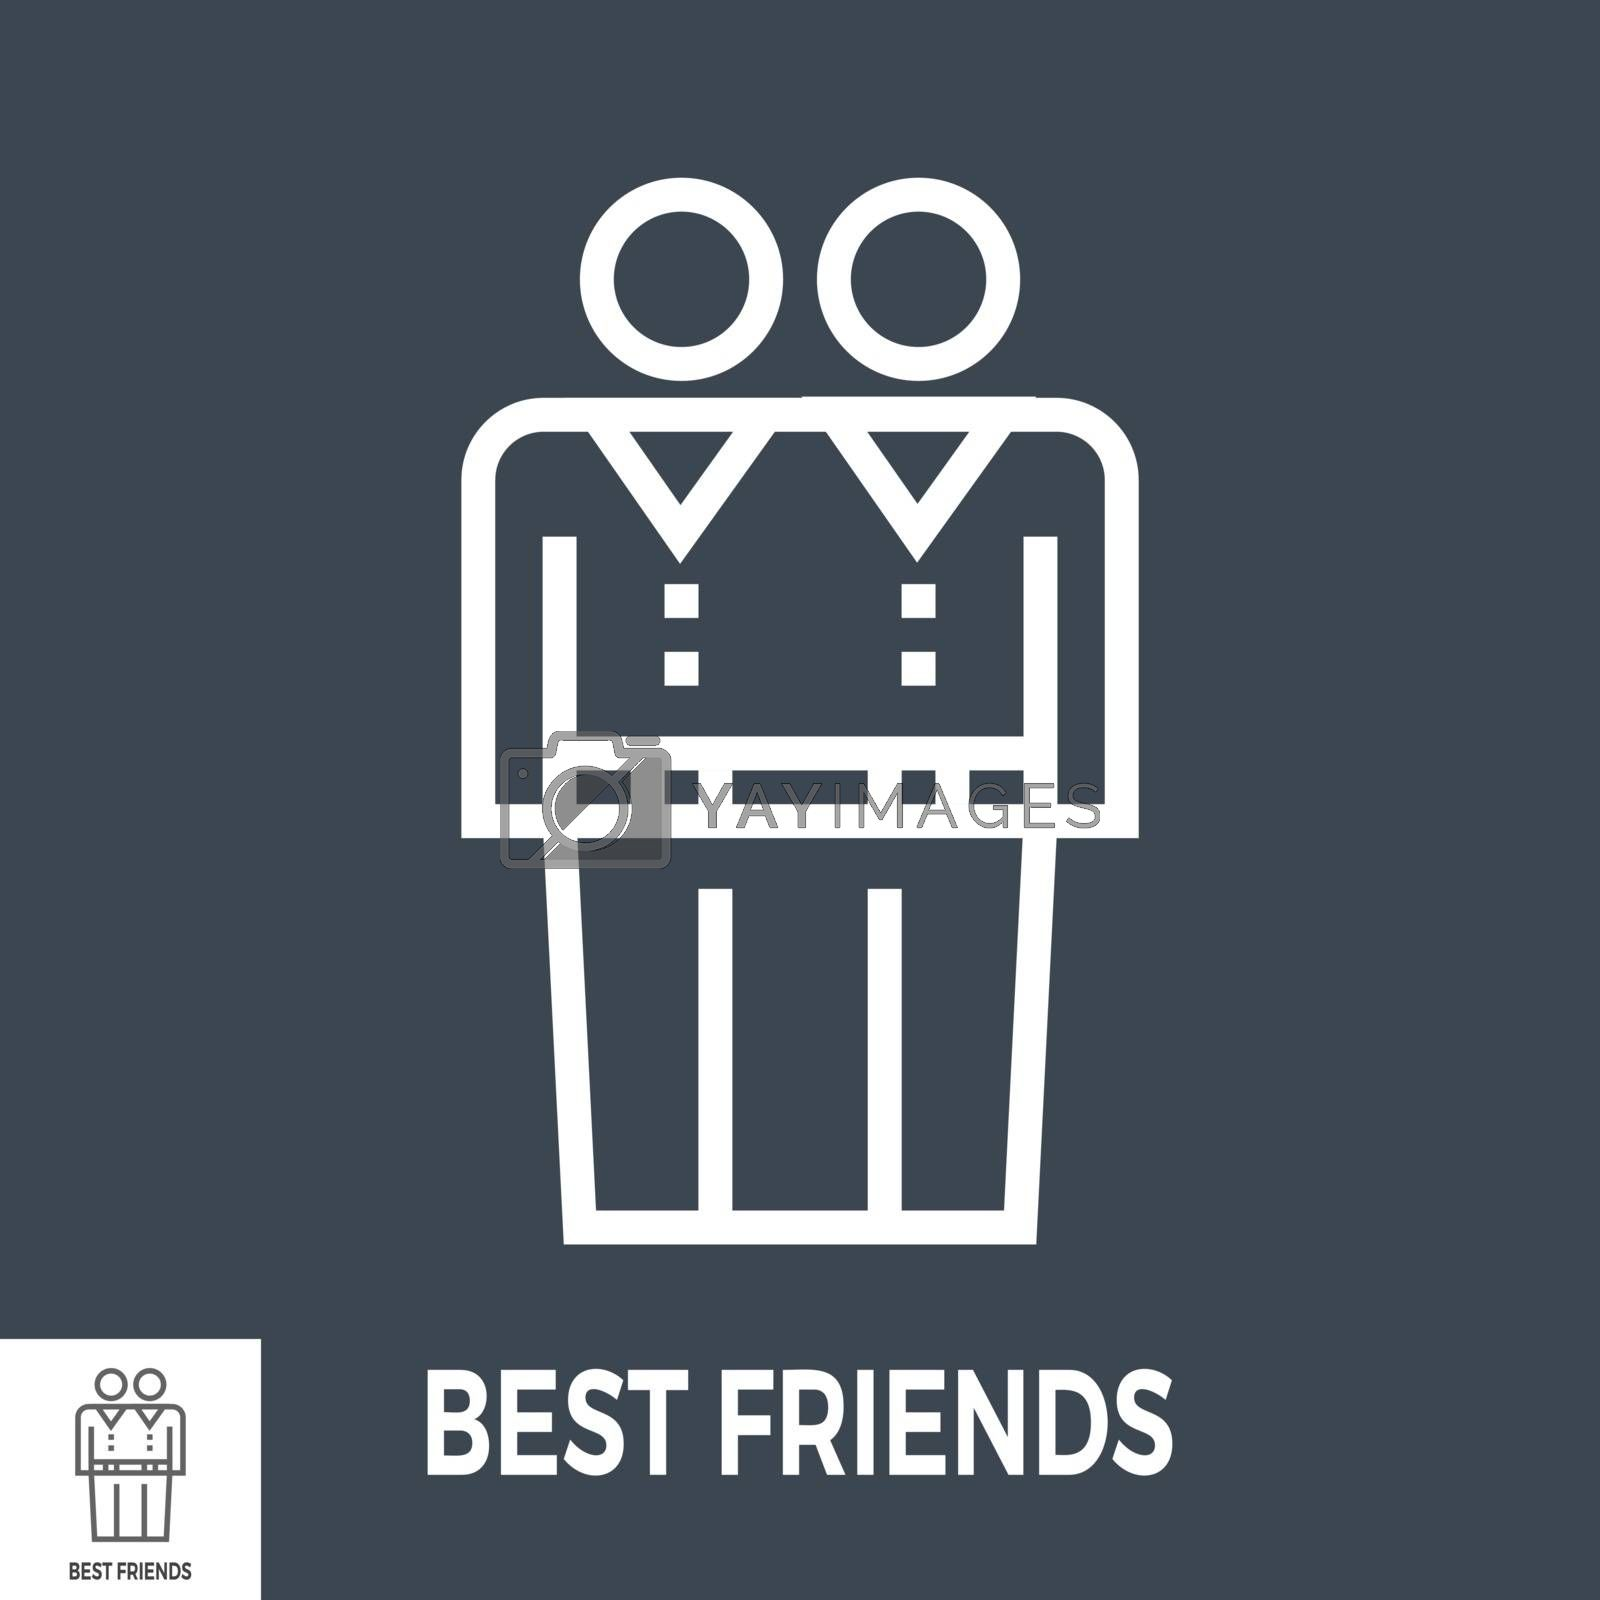 Best Friends Thin Line Vector Icon Isolated on the Black Background.